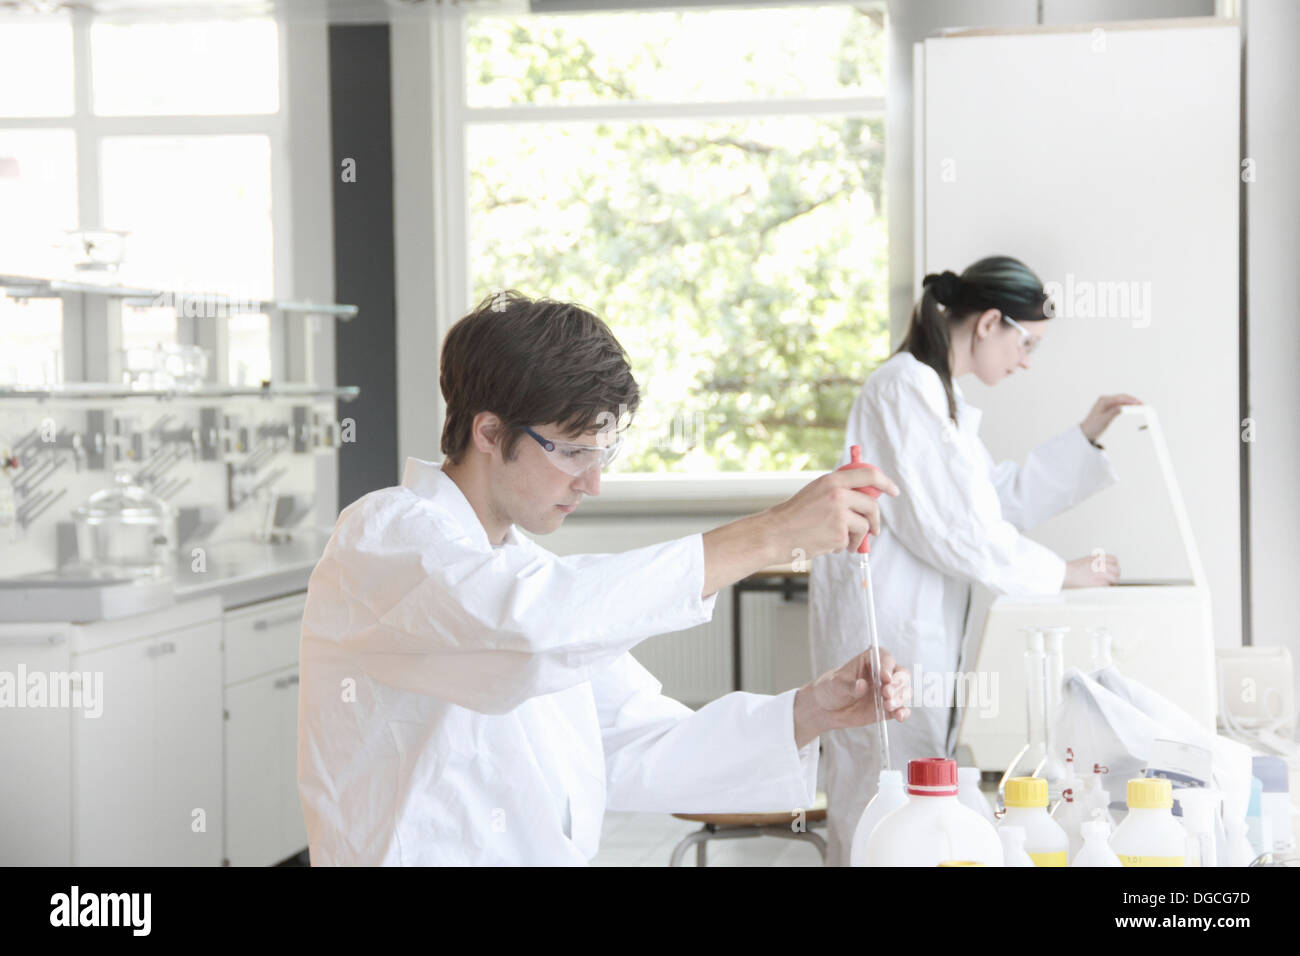 Chemistry students at work in lab - Stock Image